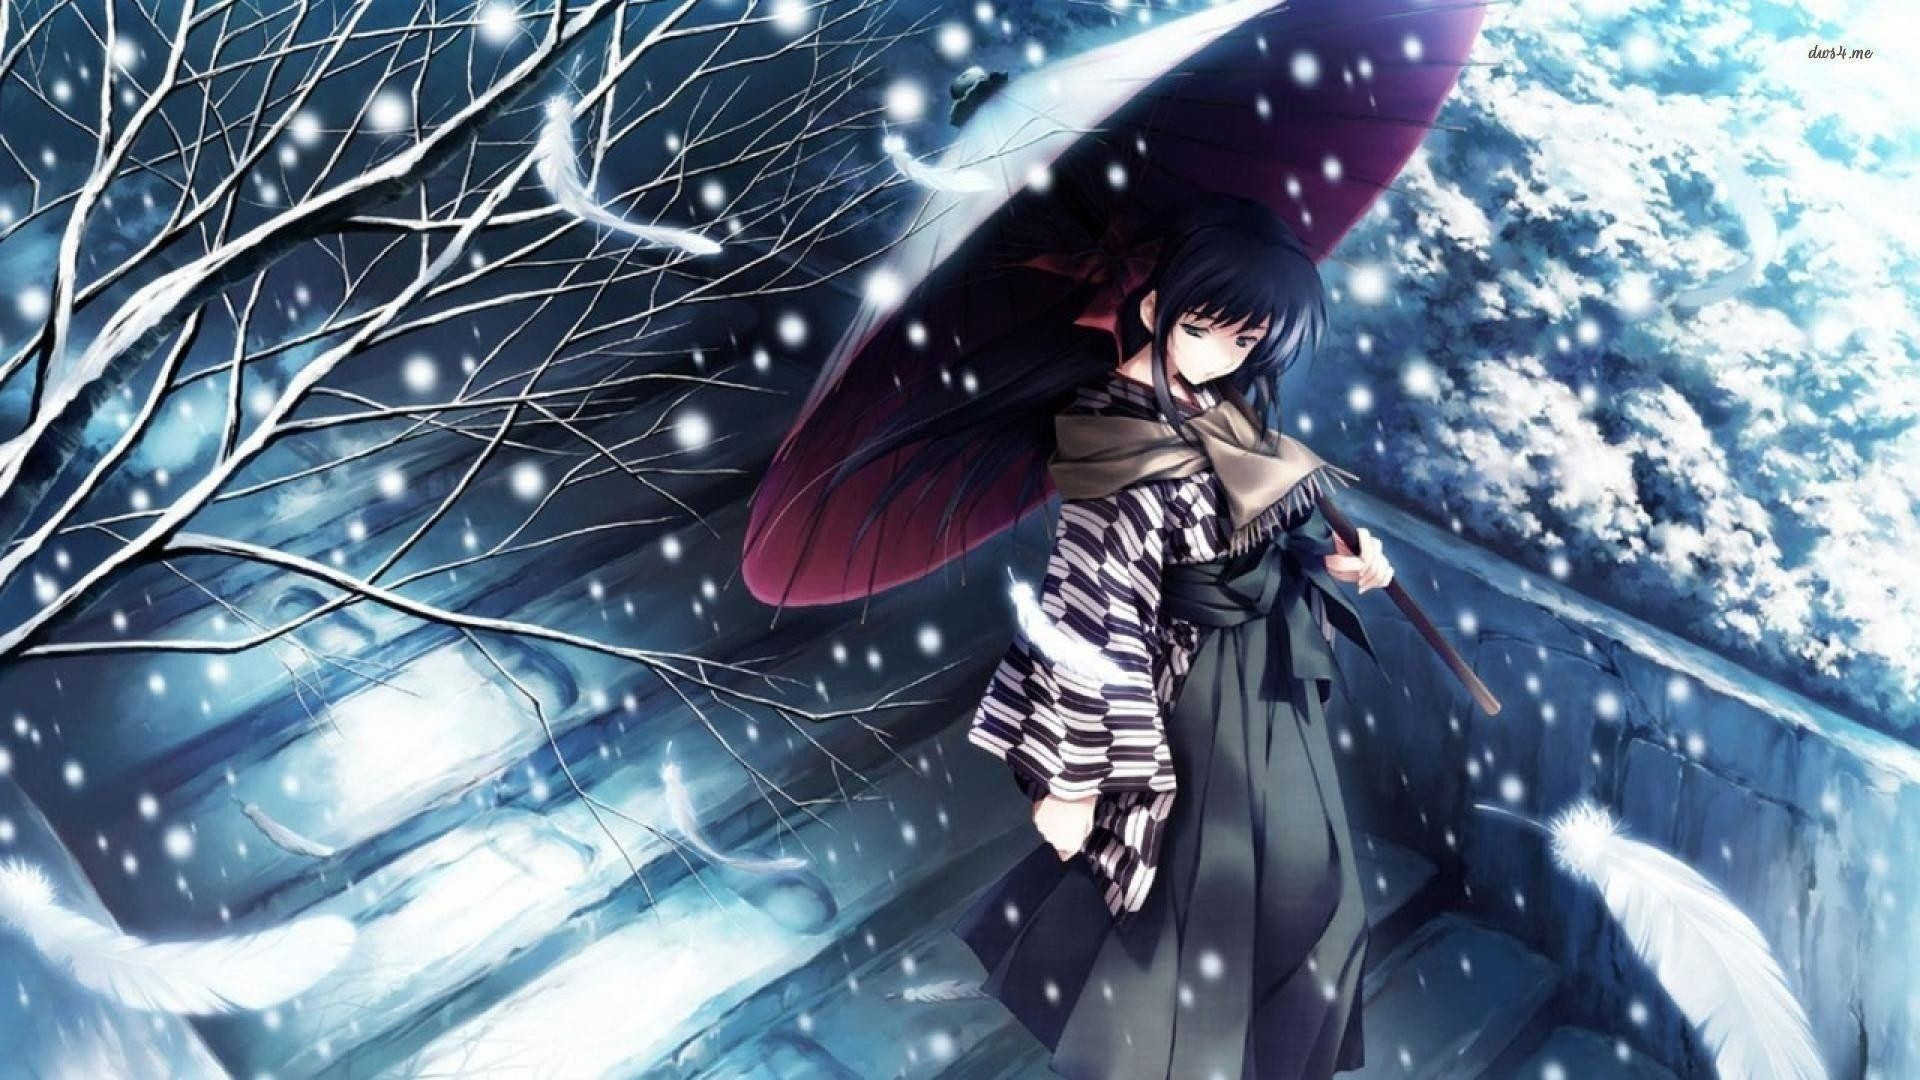 Full Hd Girl And Boy Love Wallpaper Emo Anime Wallpapers 69 Images